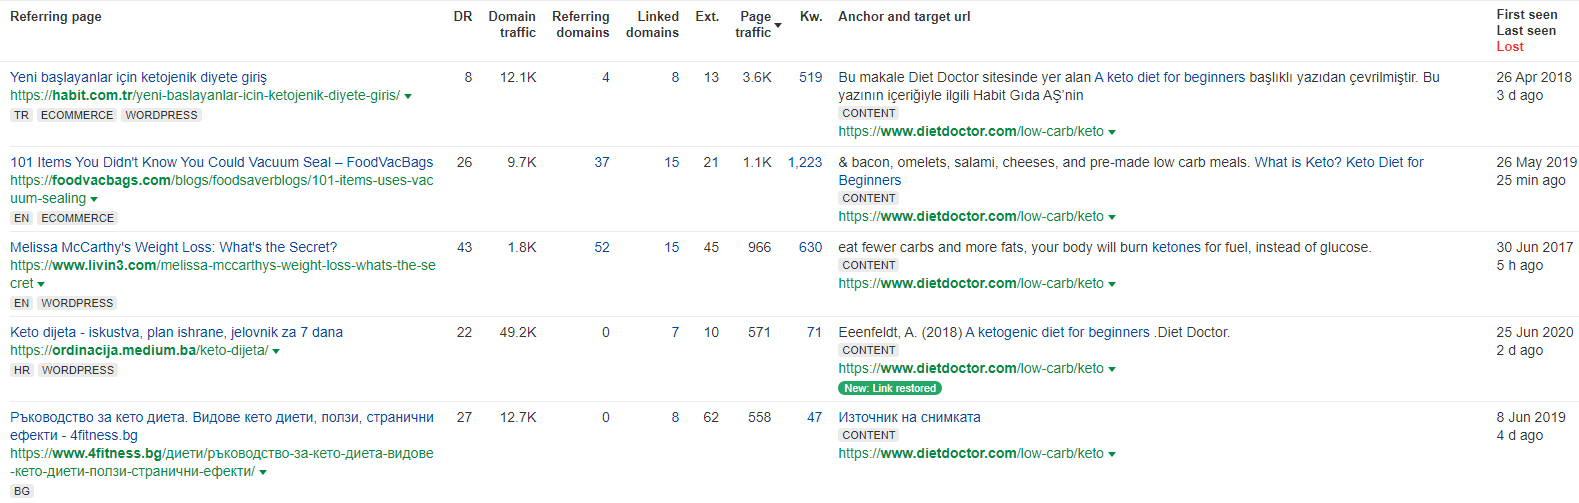 ahrefs page links from